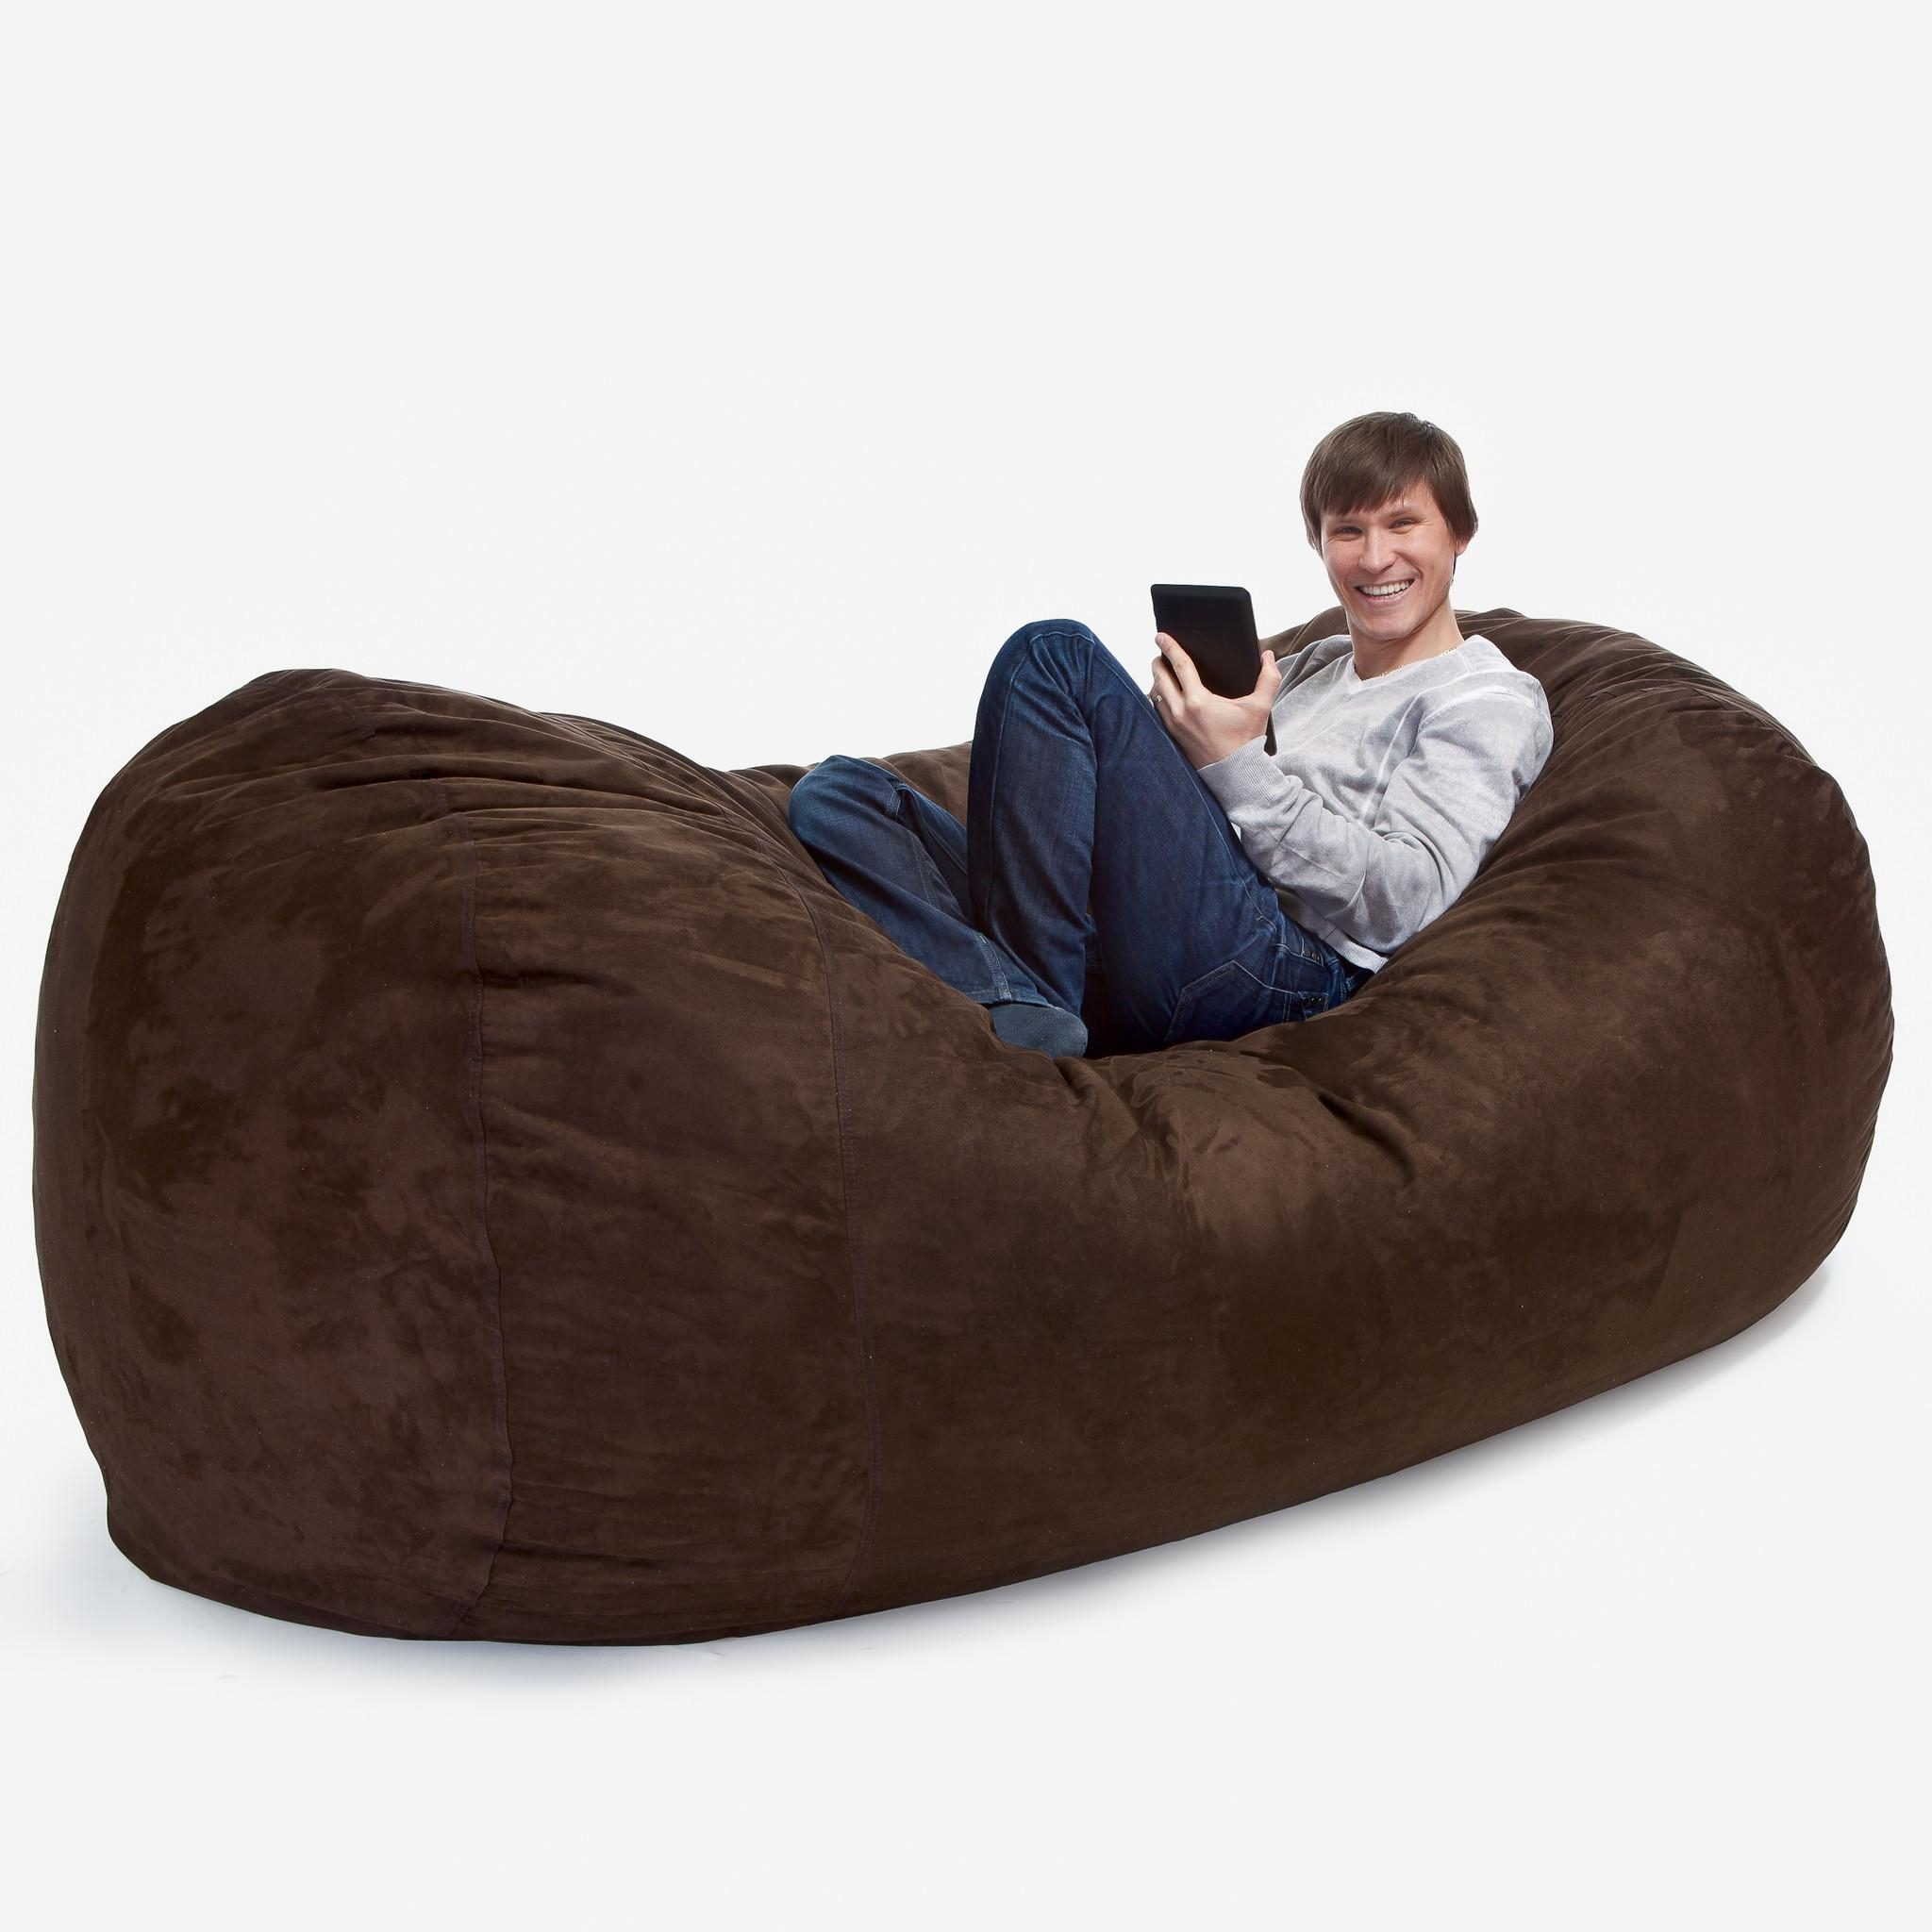 7 Classy, Adult Bean Bags -Room & Bath regarding Bean Bag Sofa Chairs